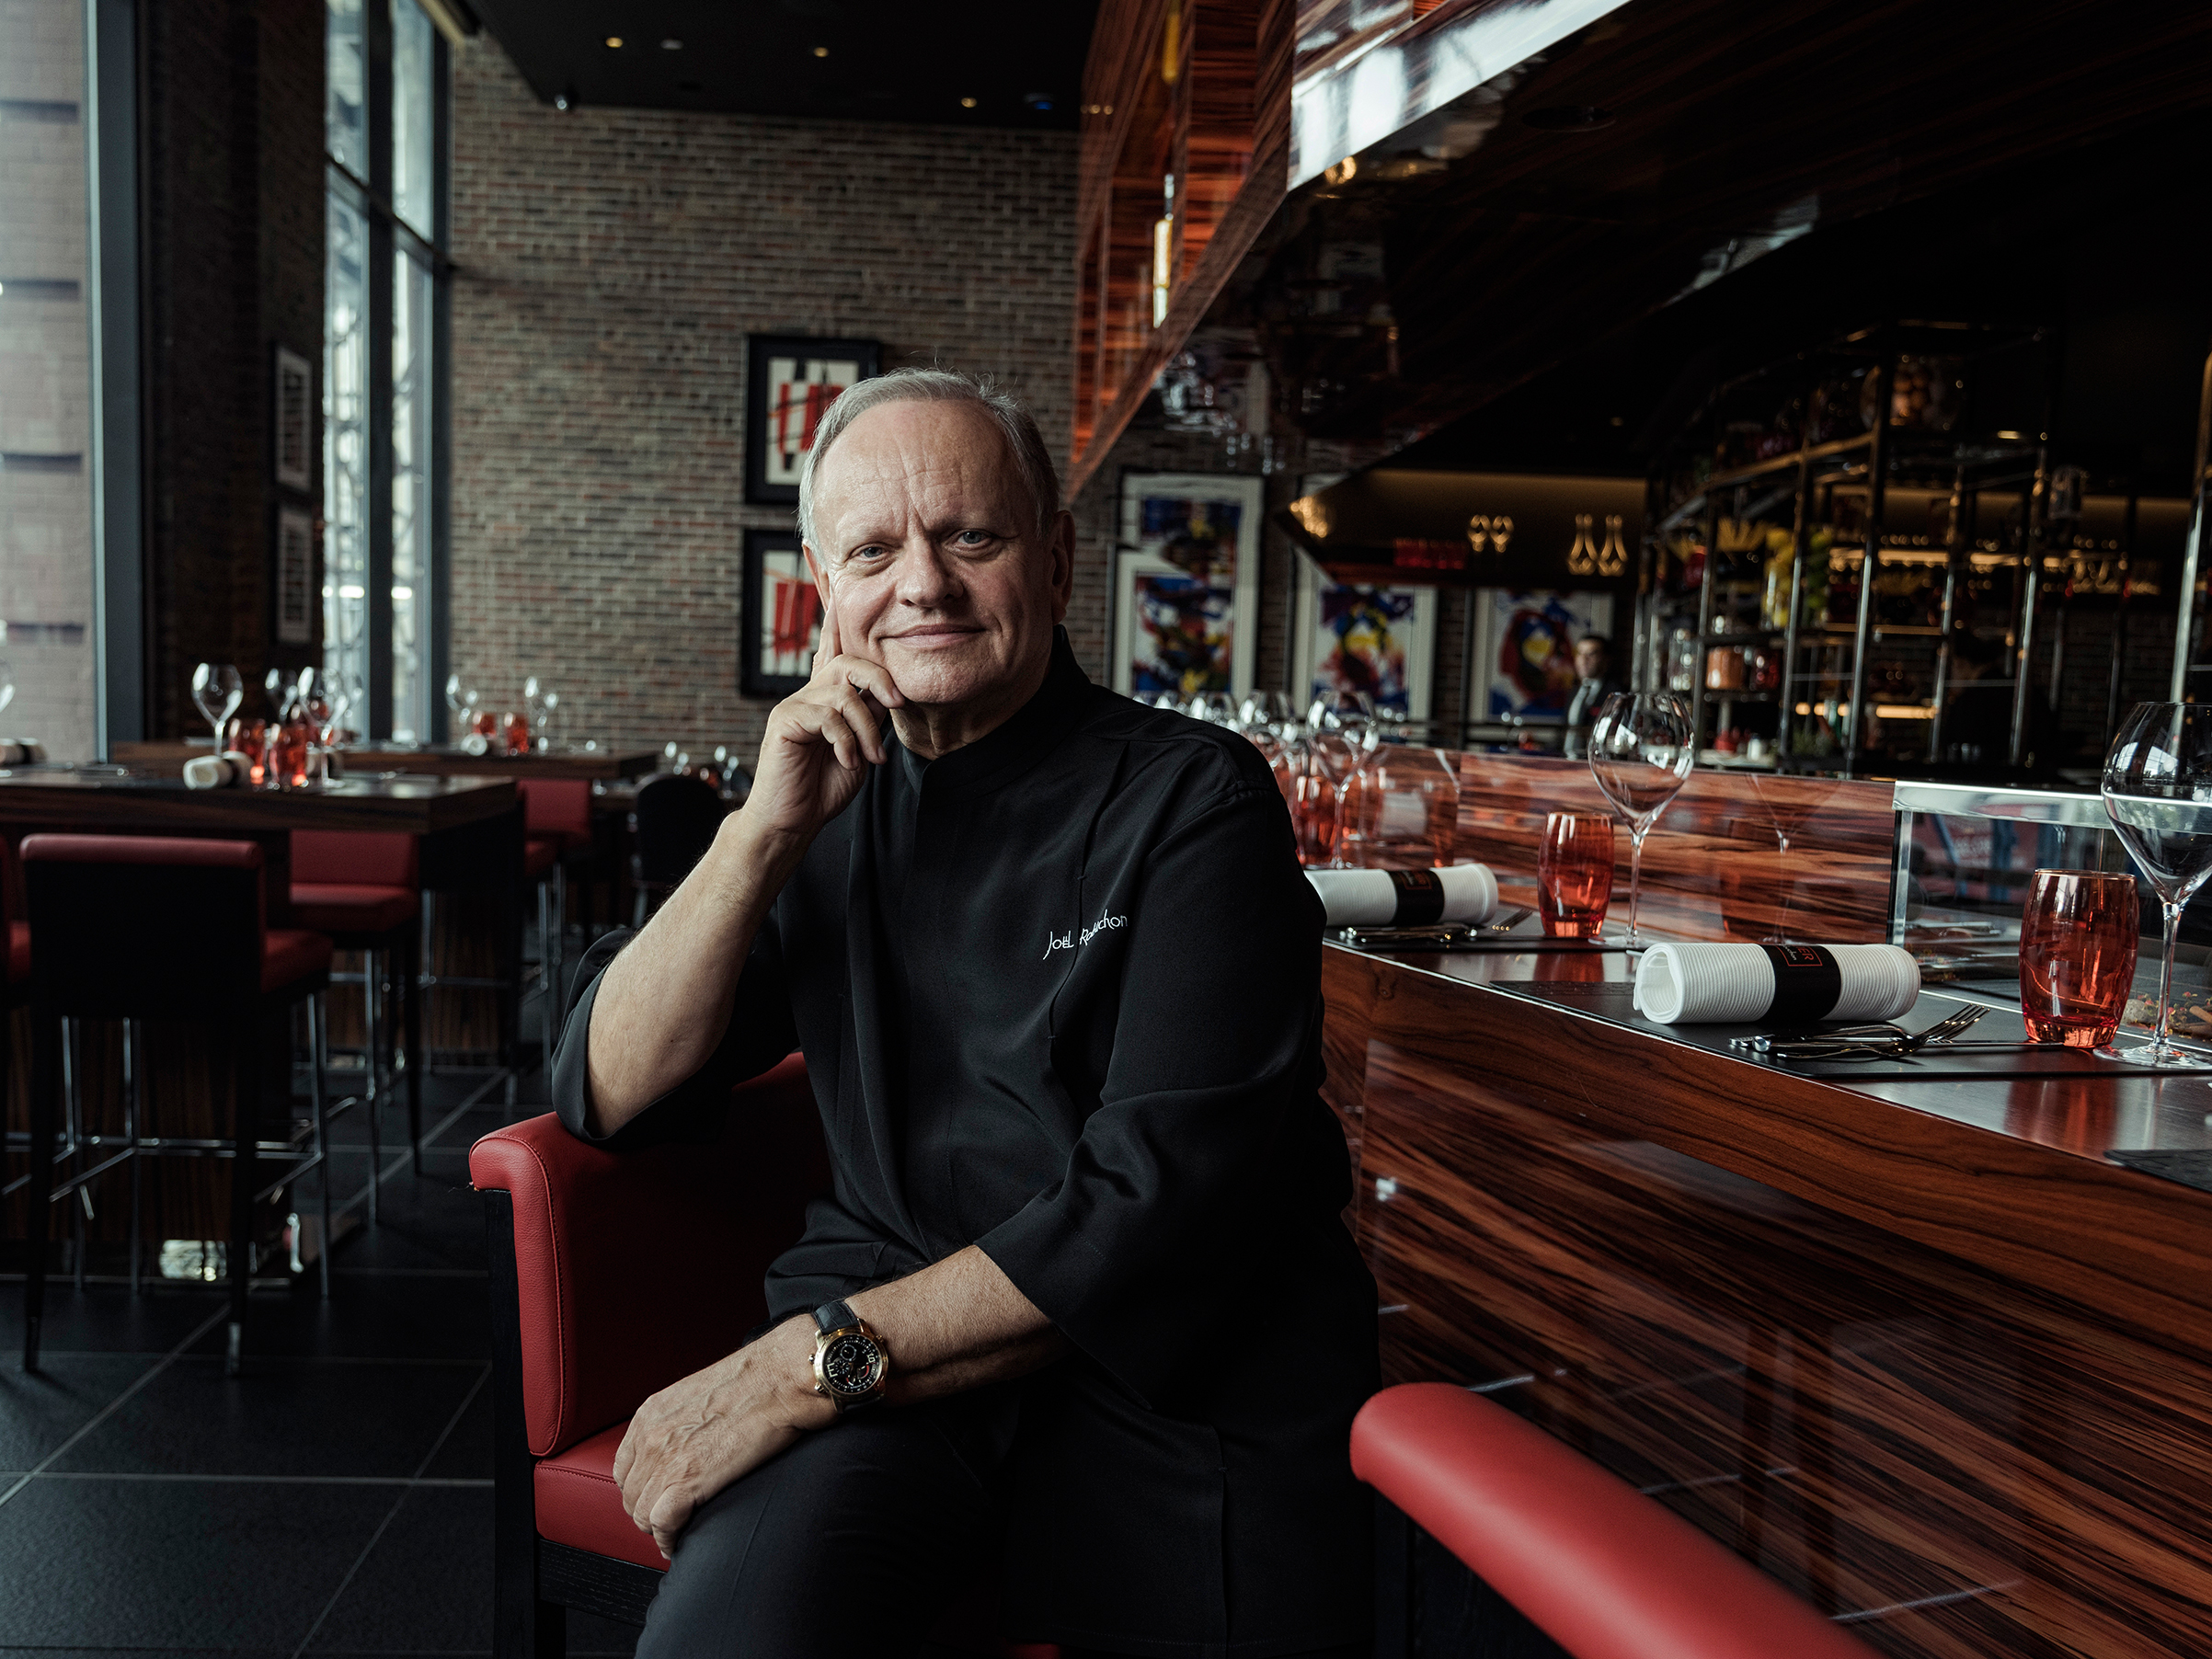 Robuchon at his restaurant L'Atelier de Joël Robuchon in Manhattan, on Oct. 23, 2017; the chef reached 32 Michelin stars